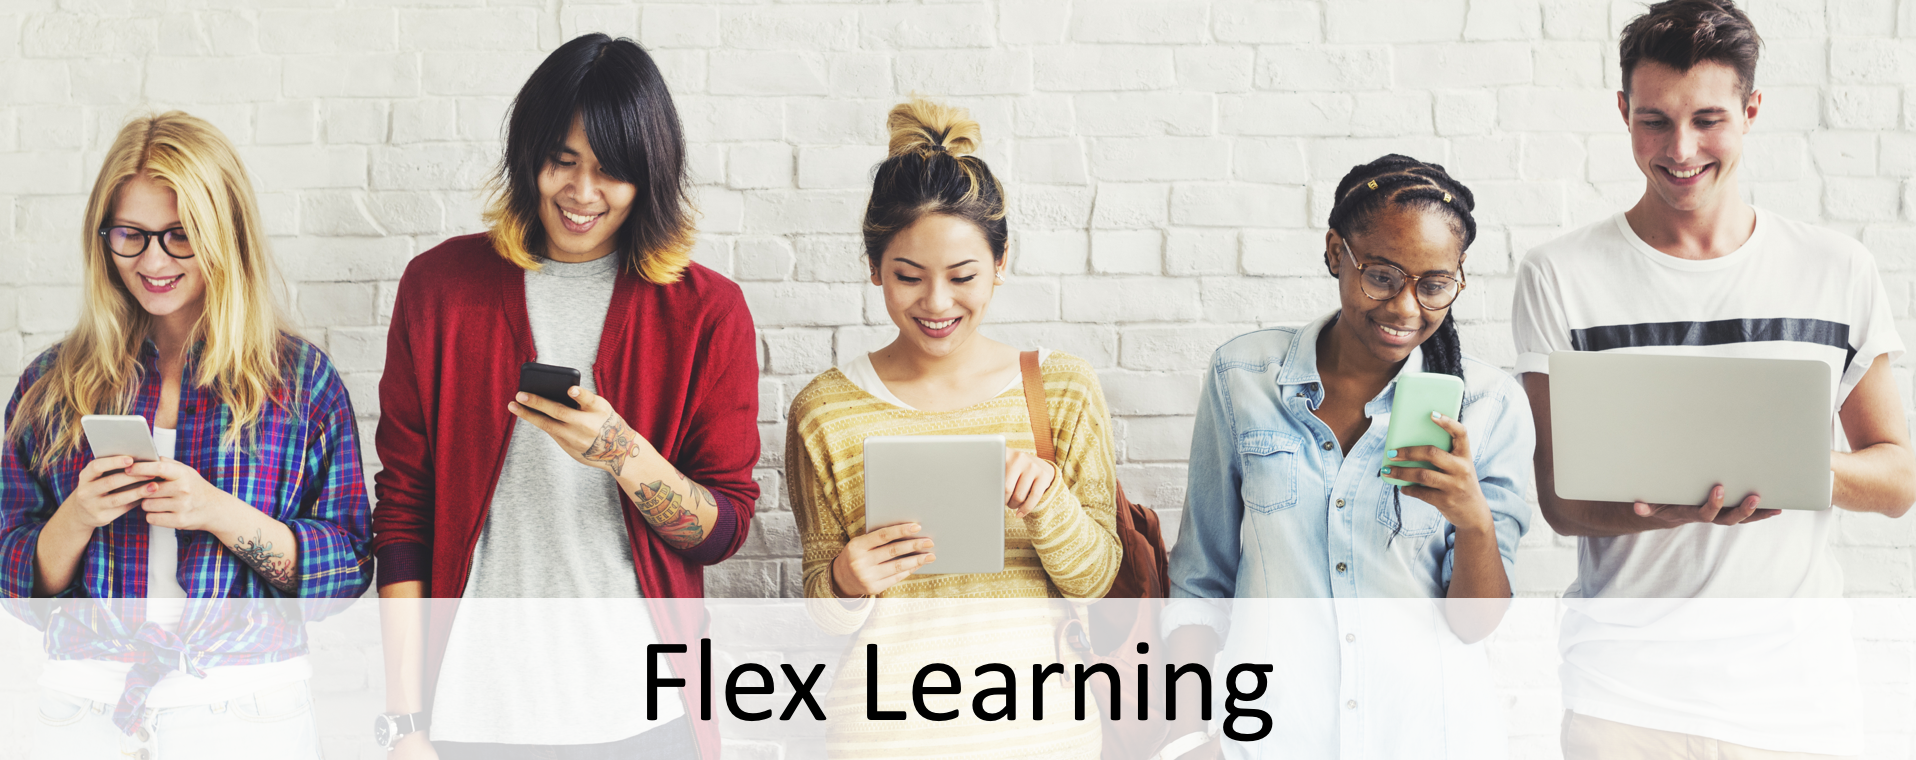 Flex Learning Banner